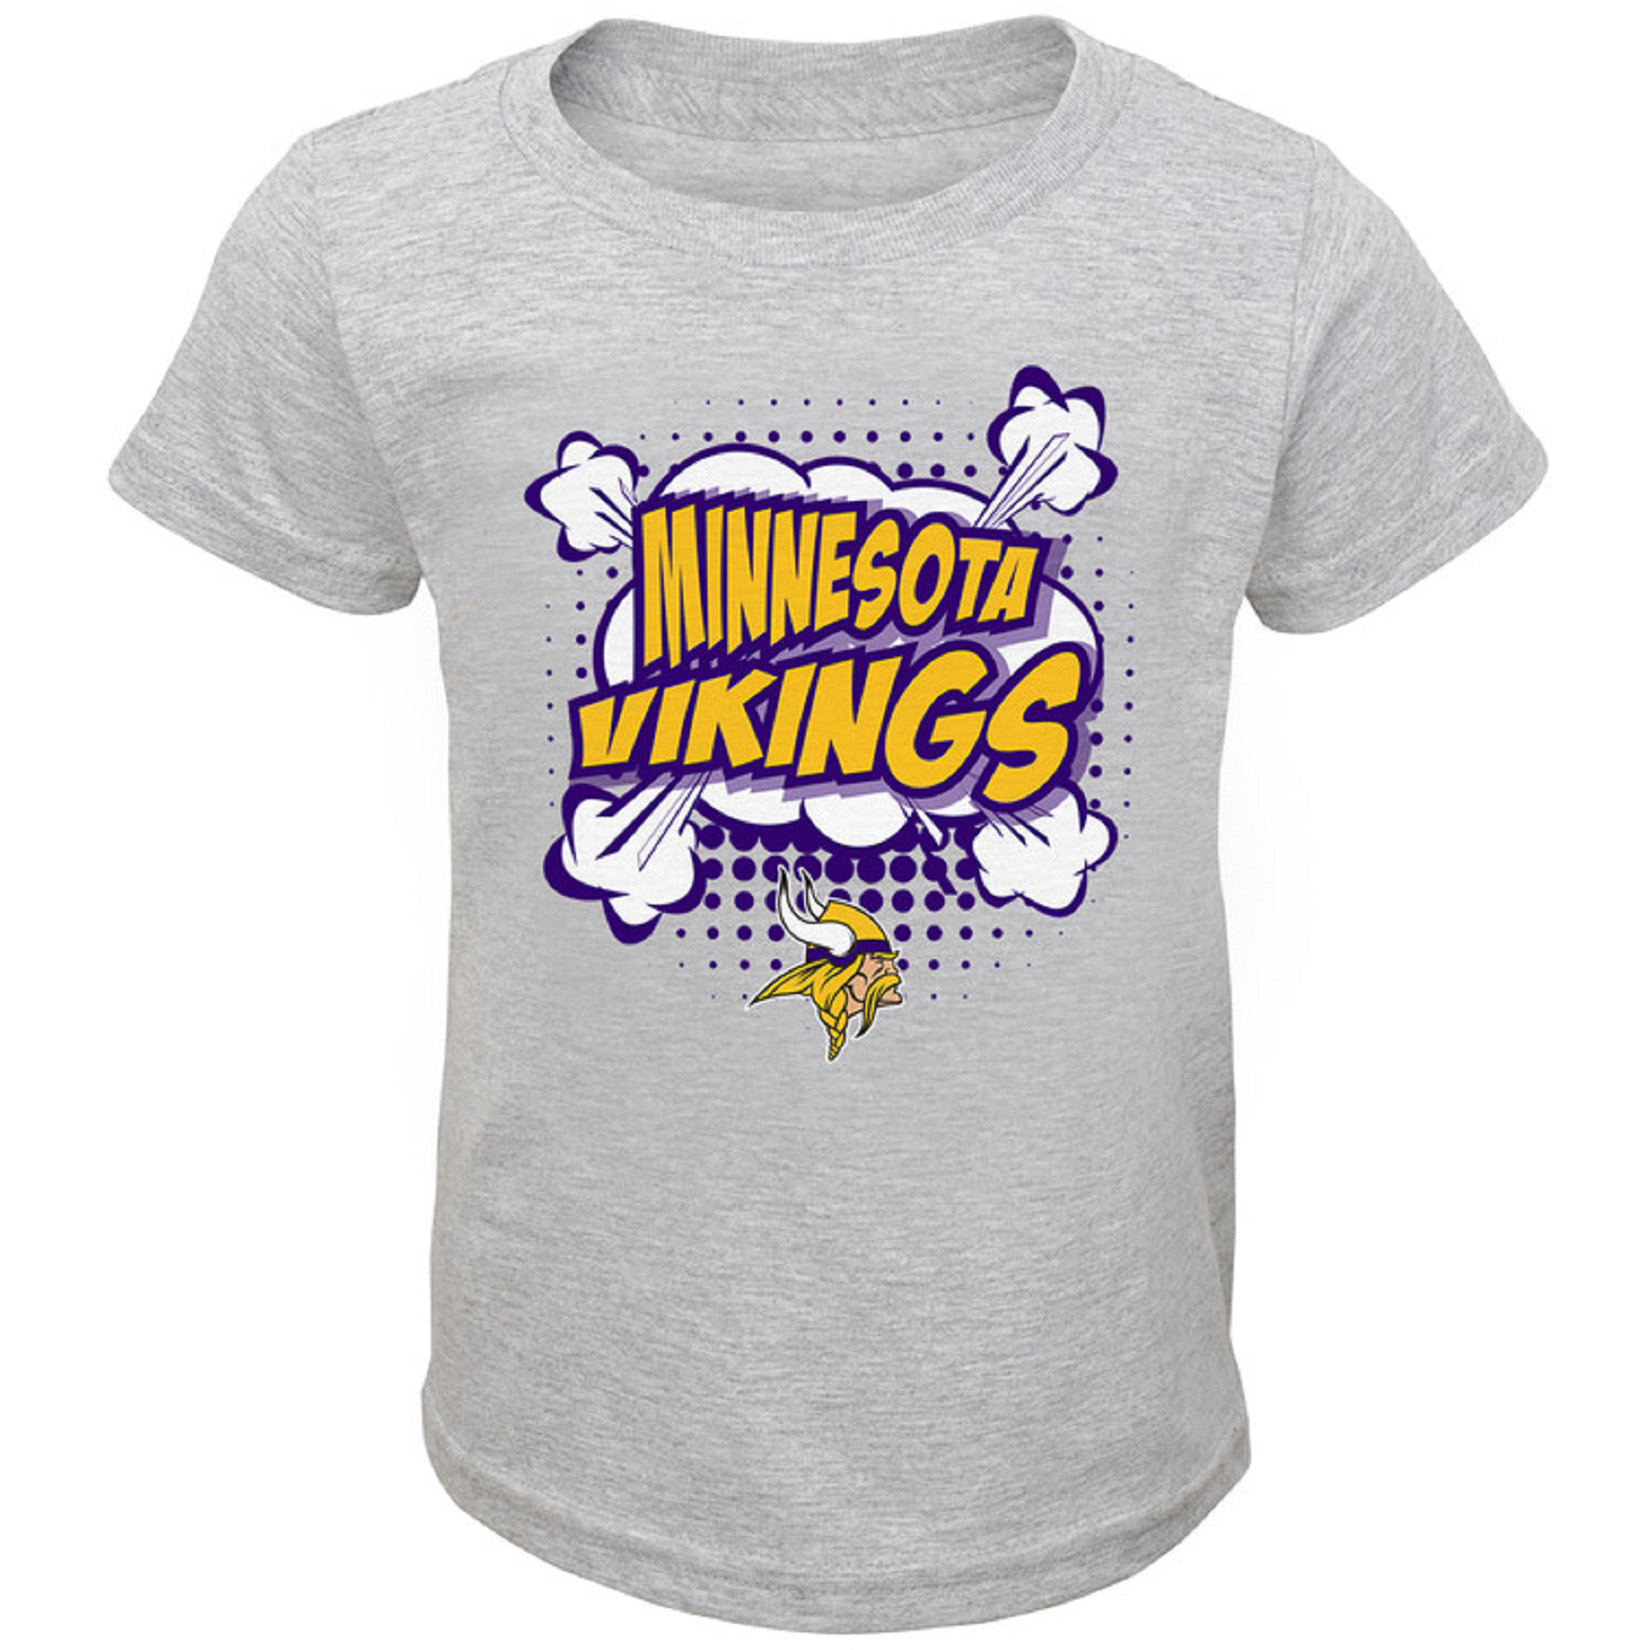 Toddler Heathered Gray Minnesota Vikings Crew Neck T-Shirt